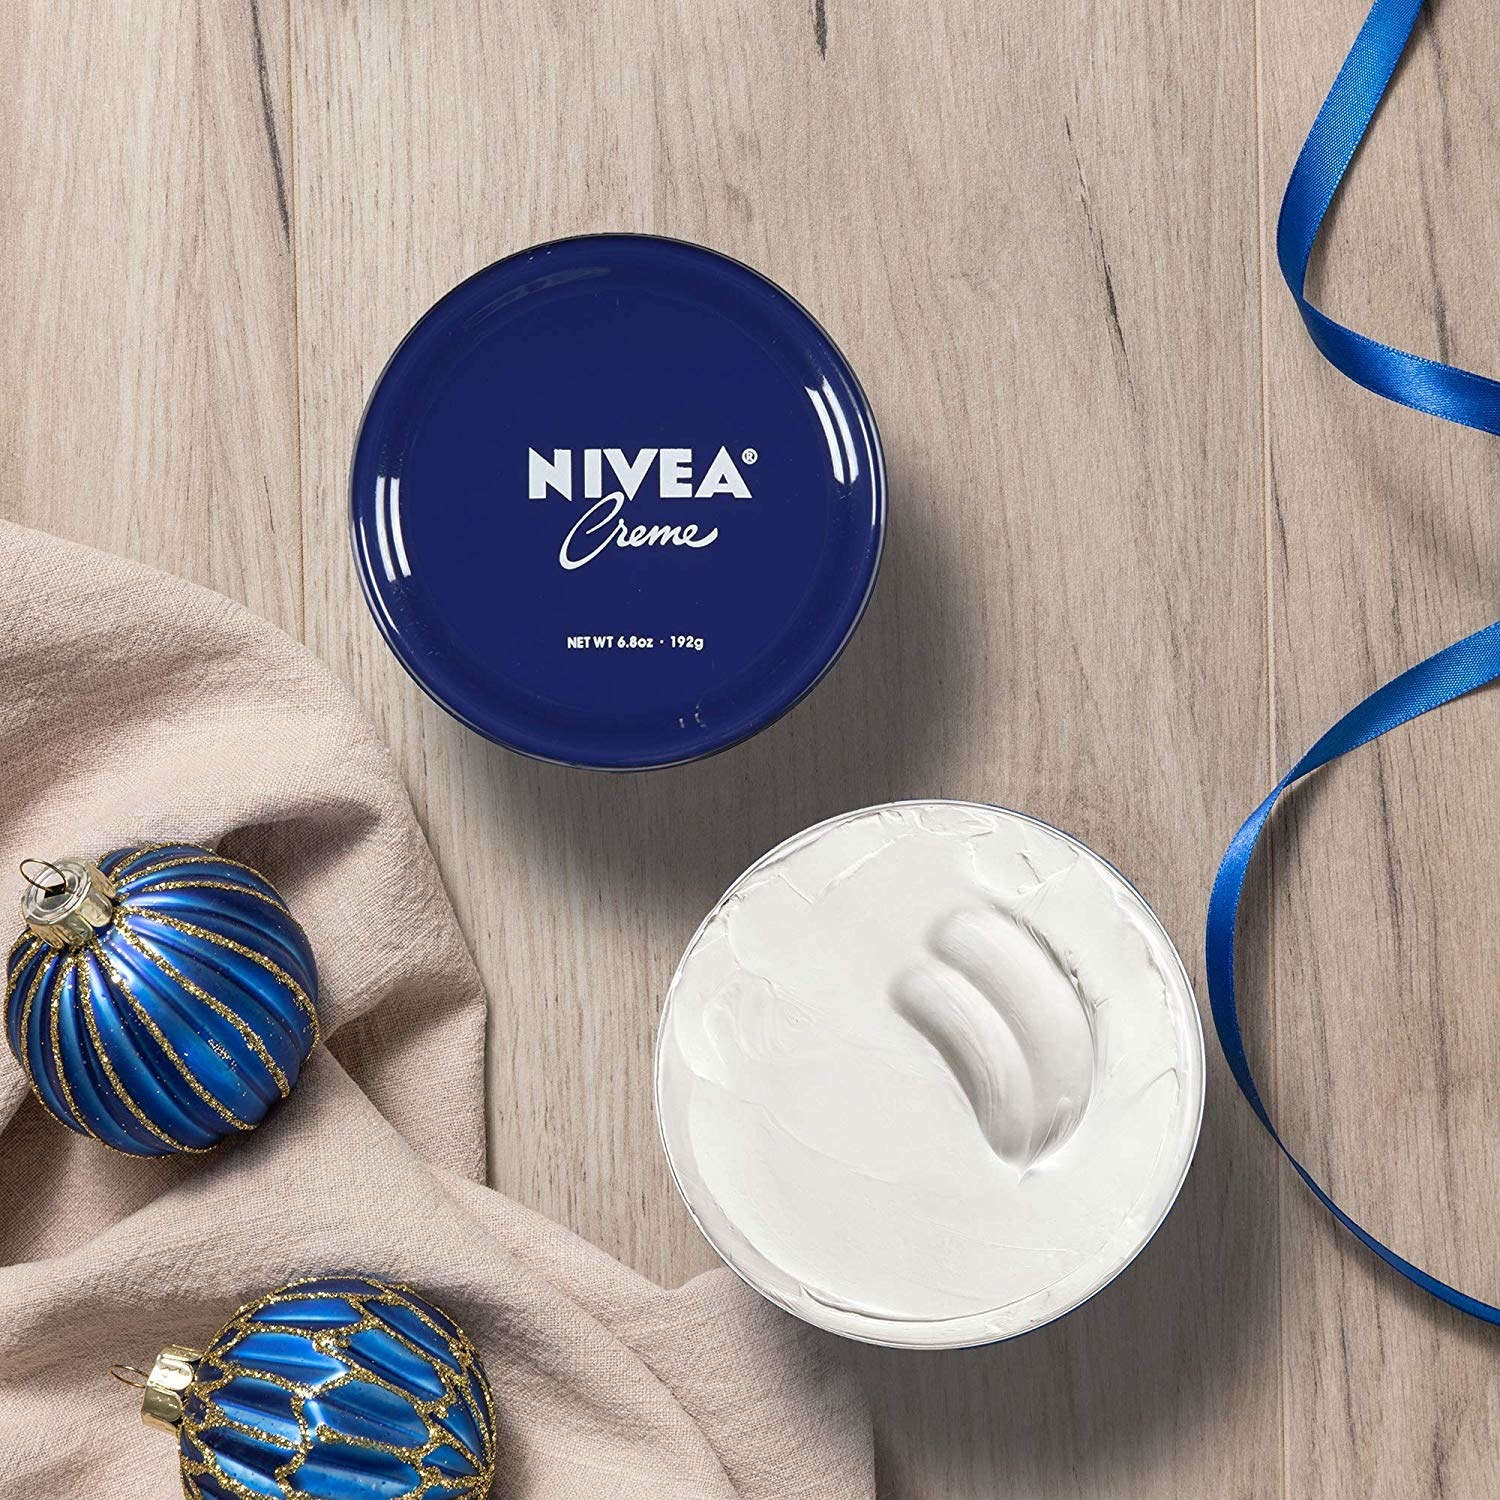 the blue tub of nivea cream